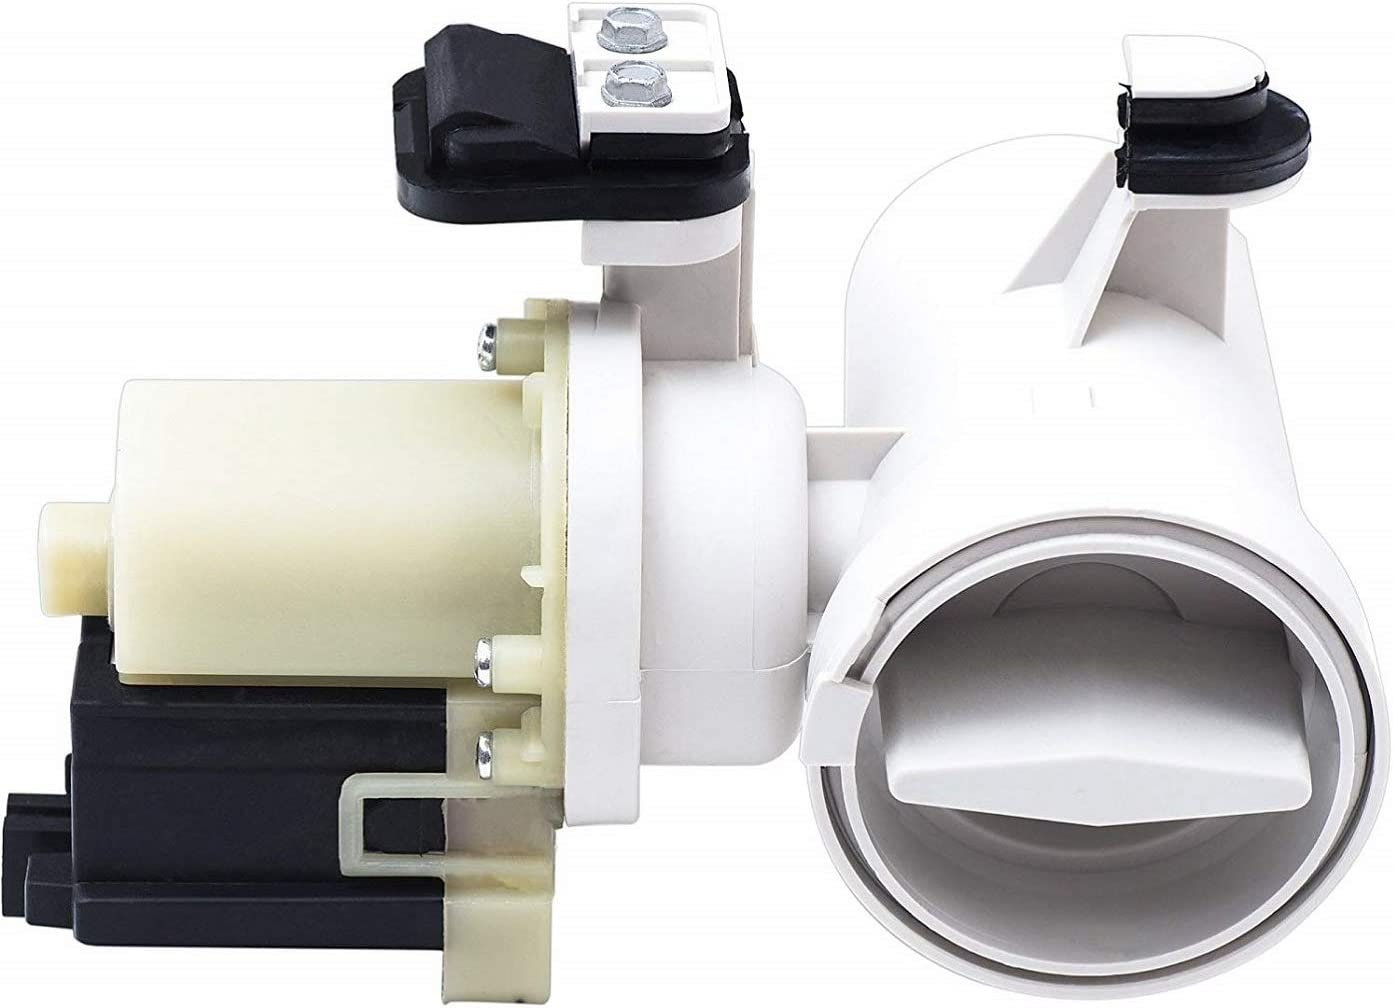 W10130913 Washer Drain Pump, compatible with Whirlpool Kenmore Maytag Washer 8540024, W10130913, AP4308966, PS1960402,W10117829 by Lucky Seven